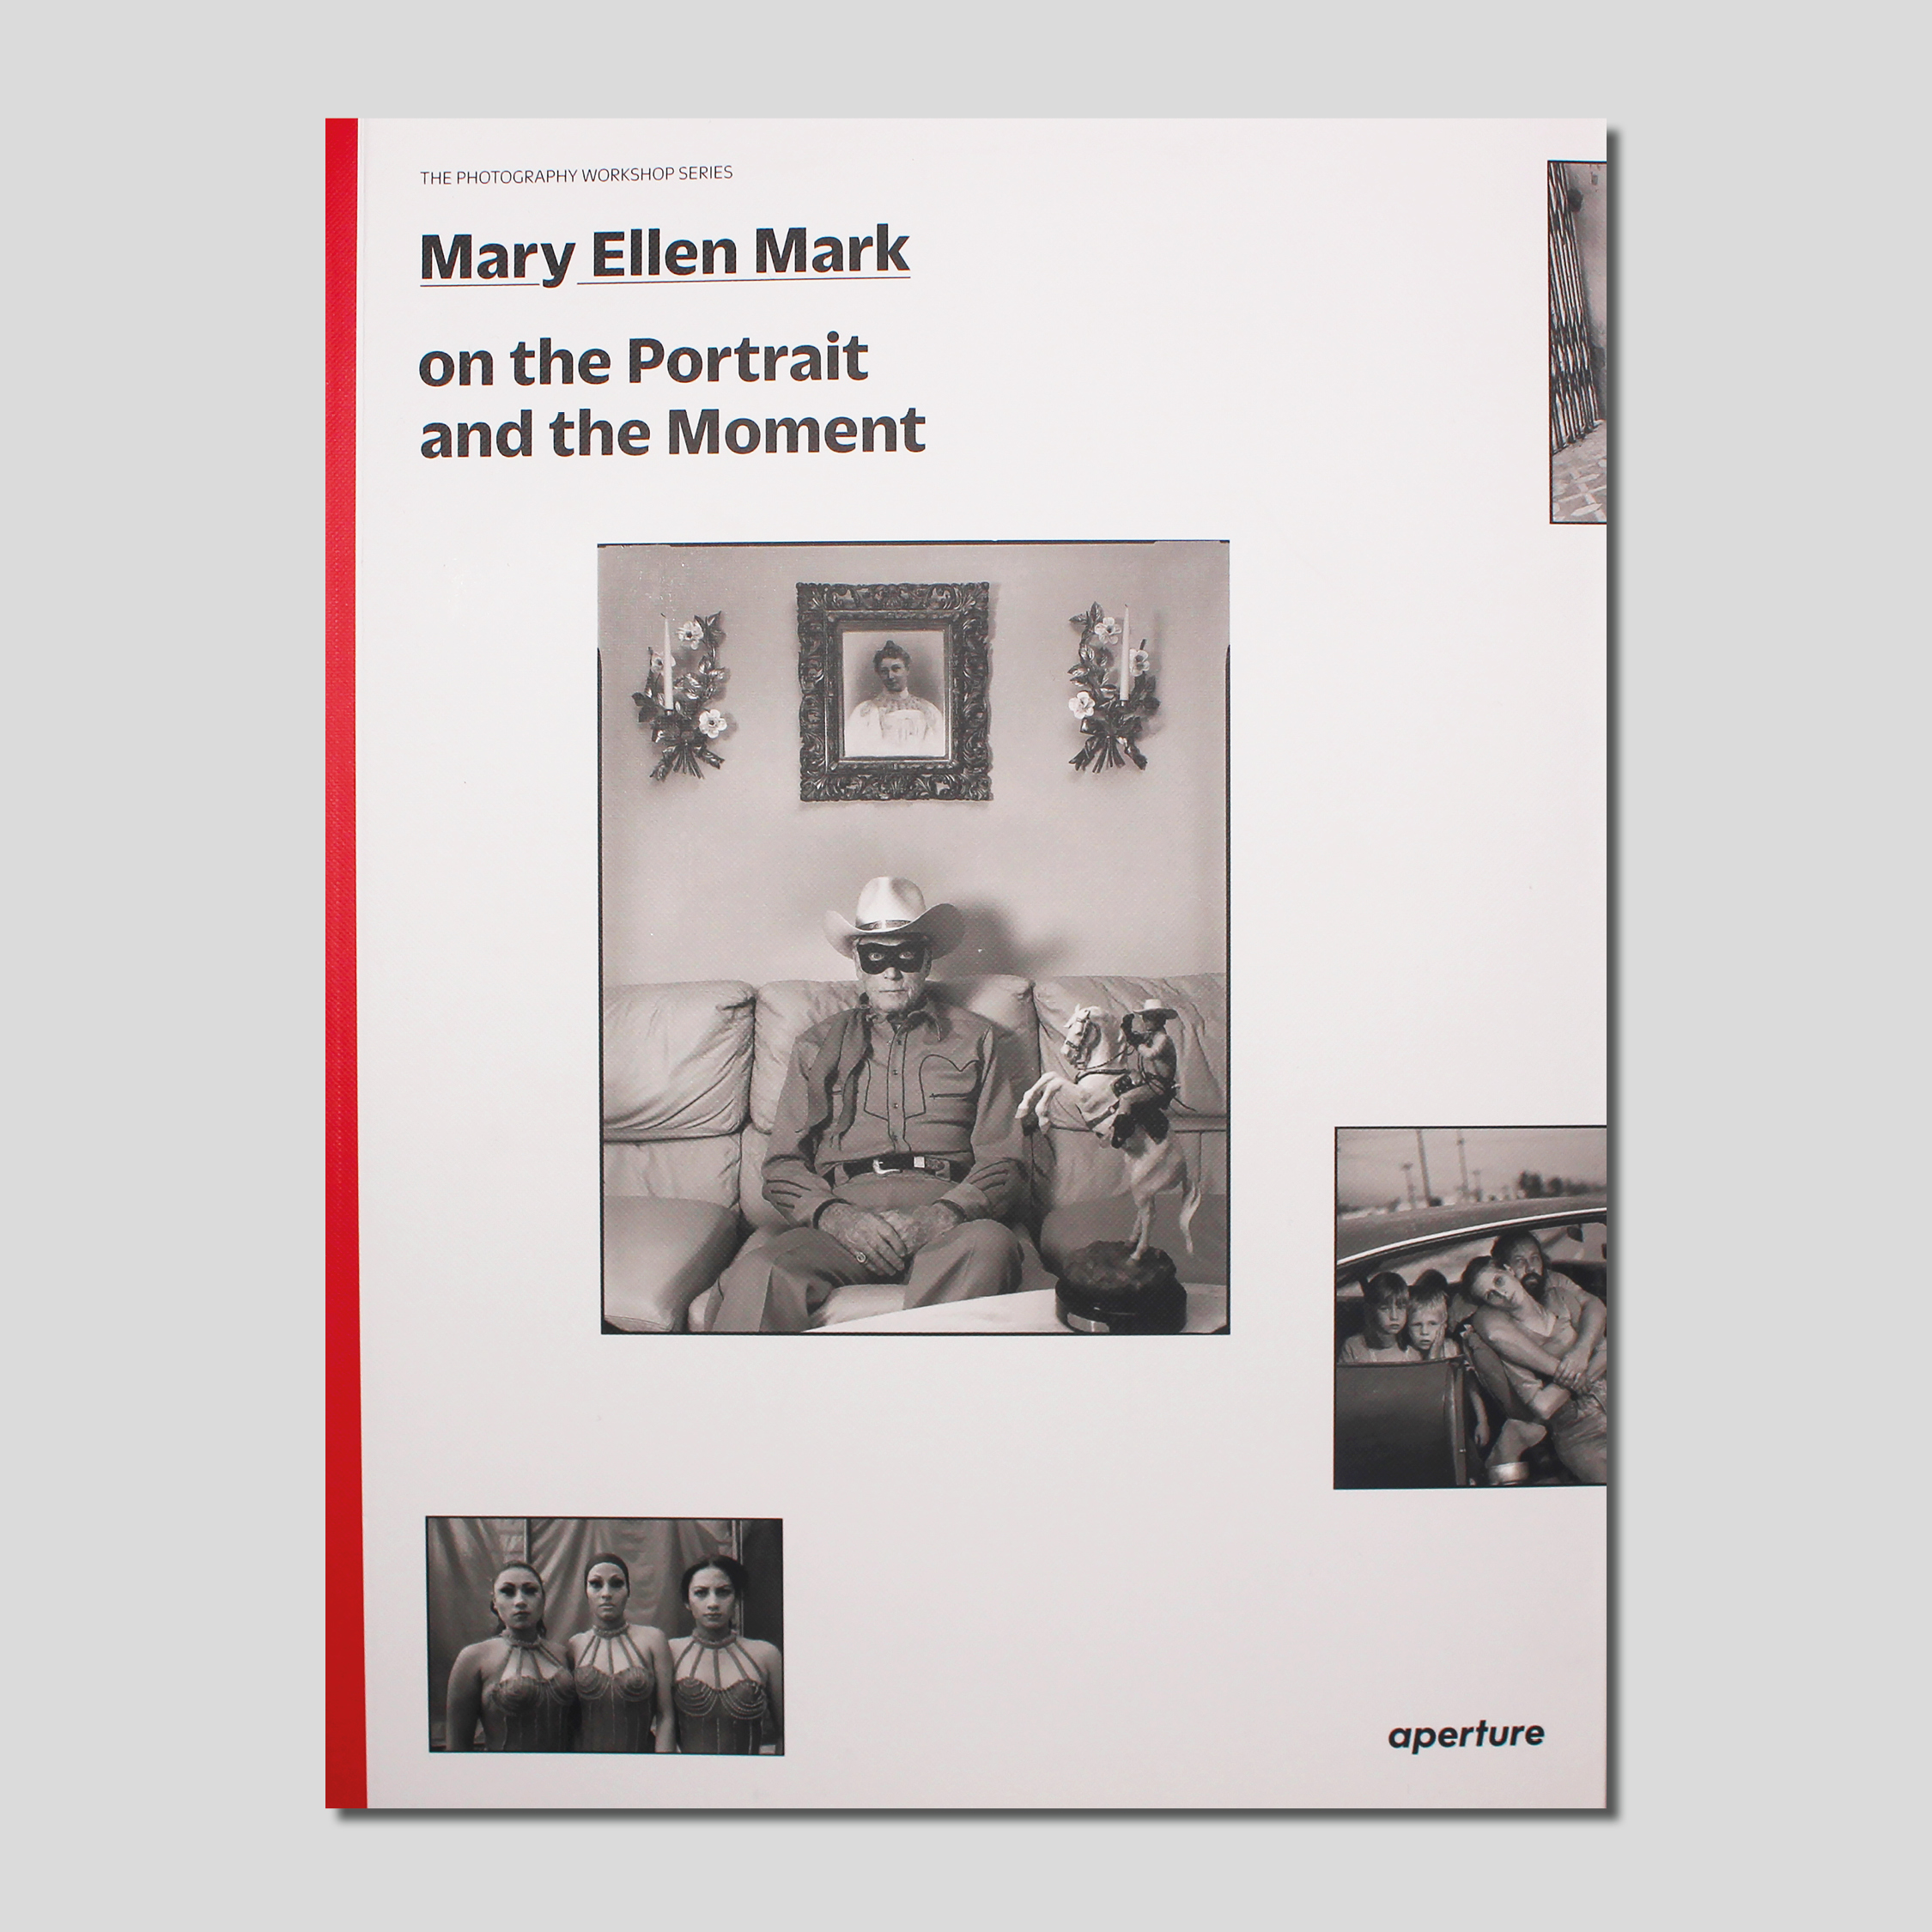 Mary Ellen Mark on the Portrait of the Moment